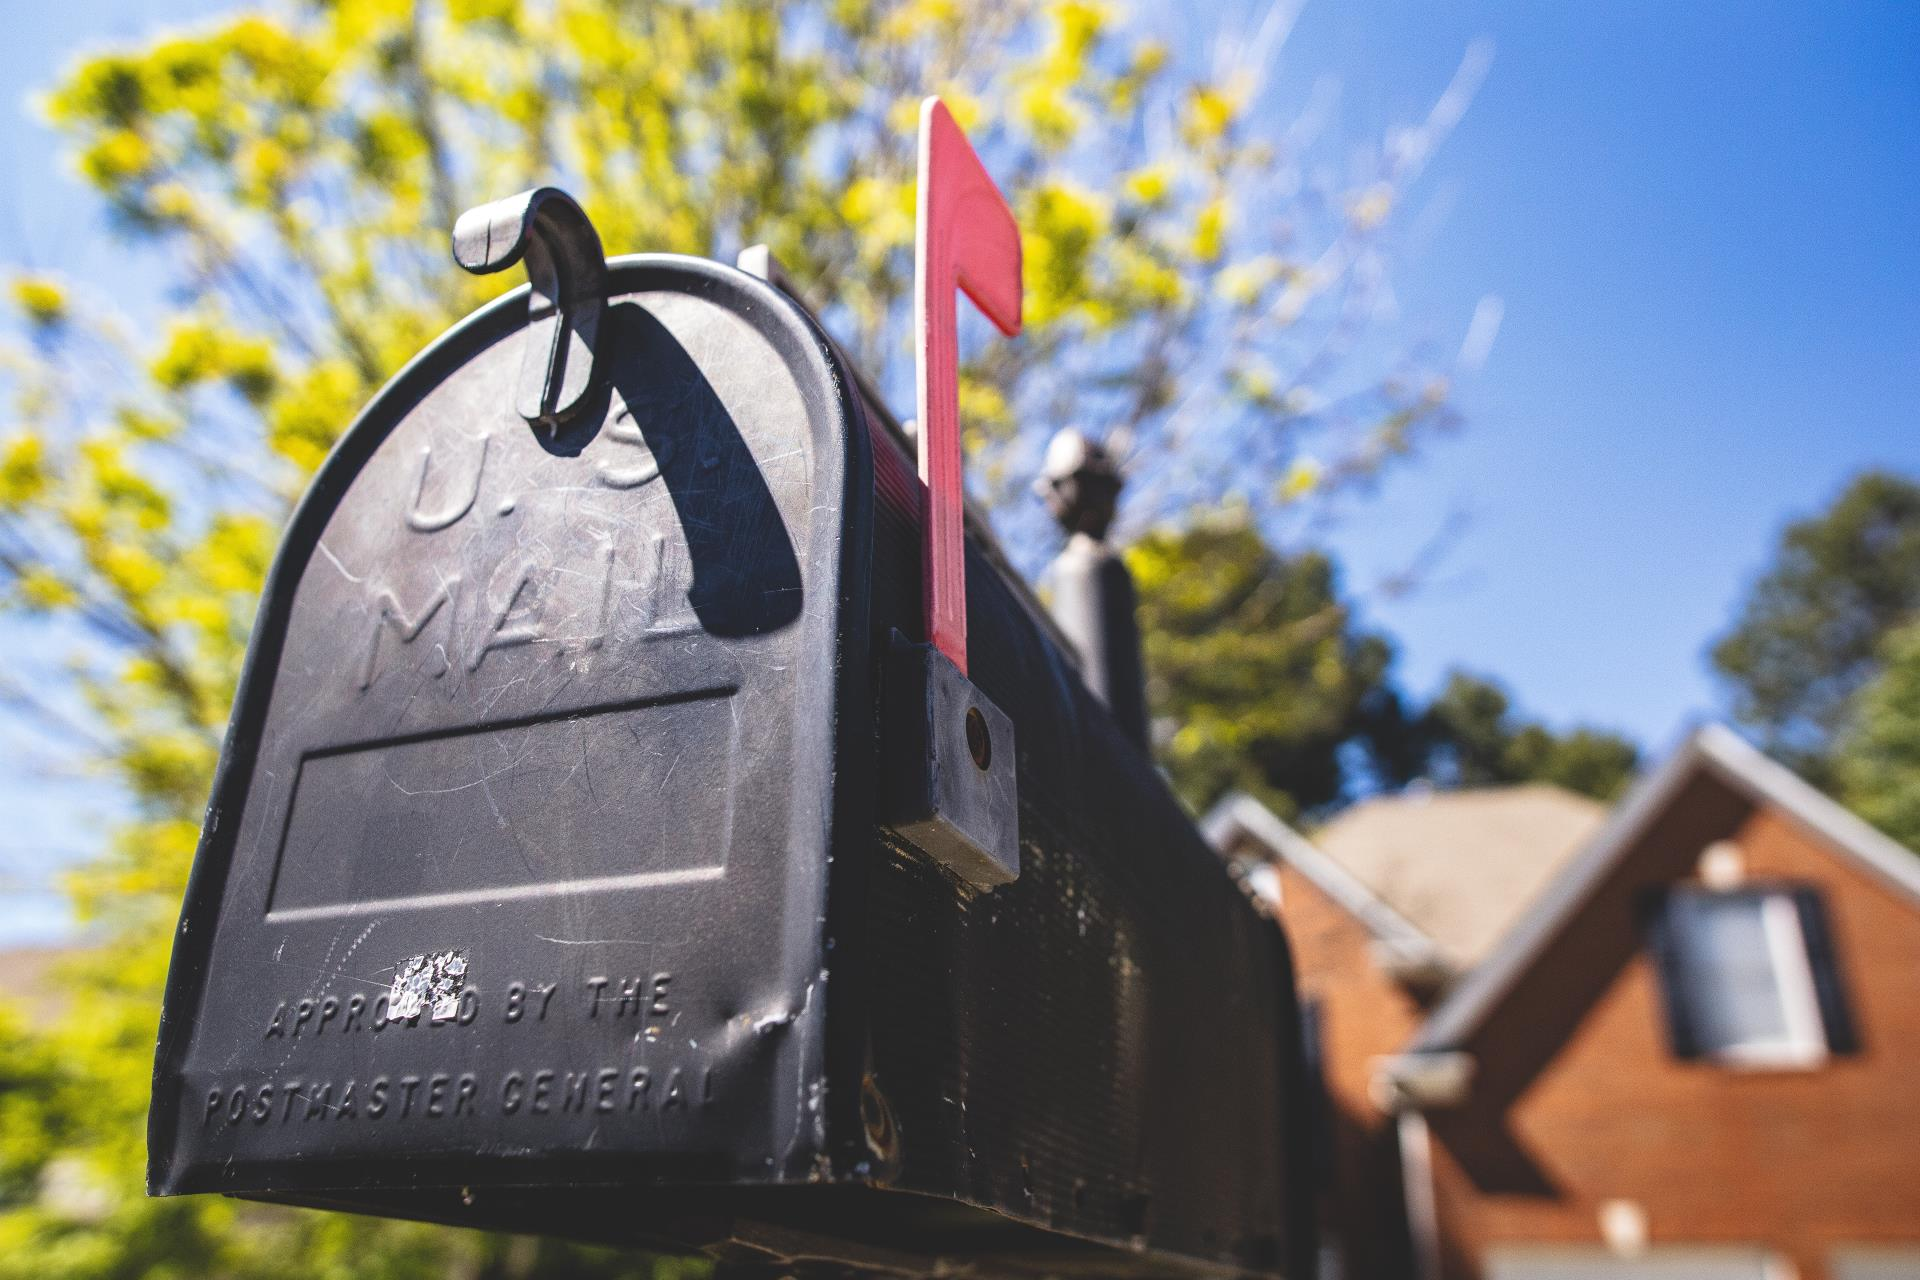 Black mailbox United States Postal Service with Red Flag and house in the background